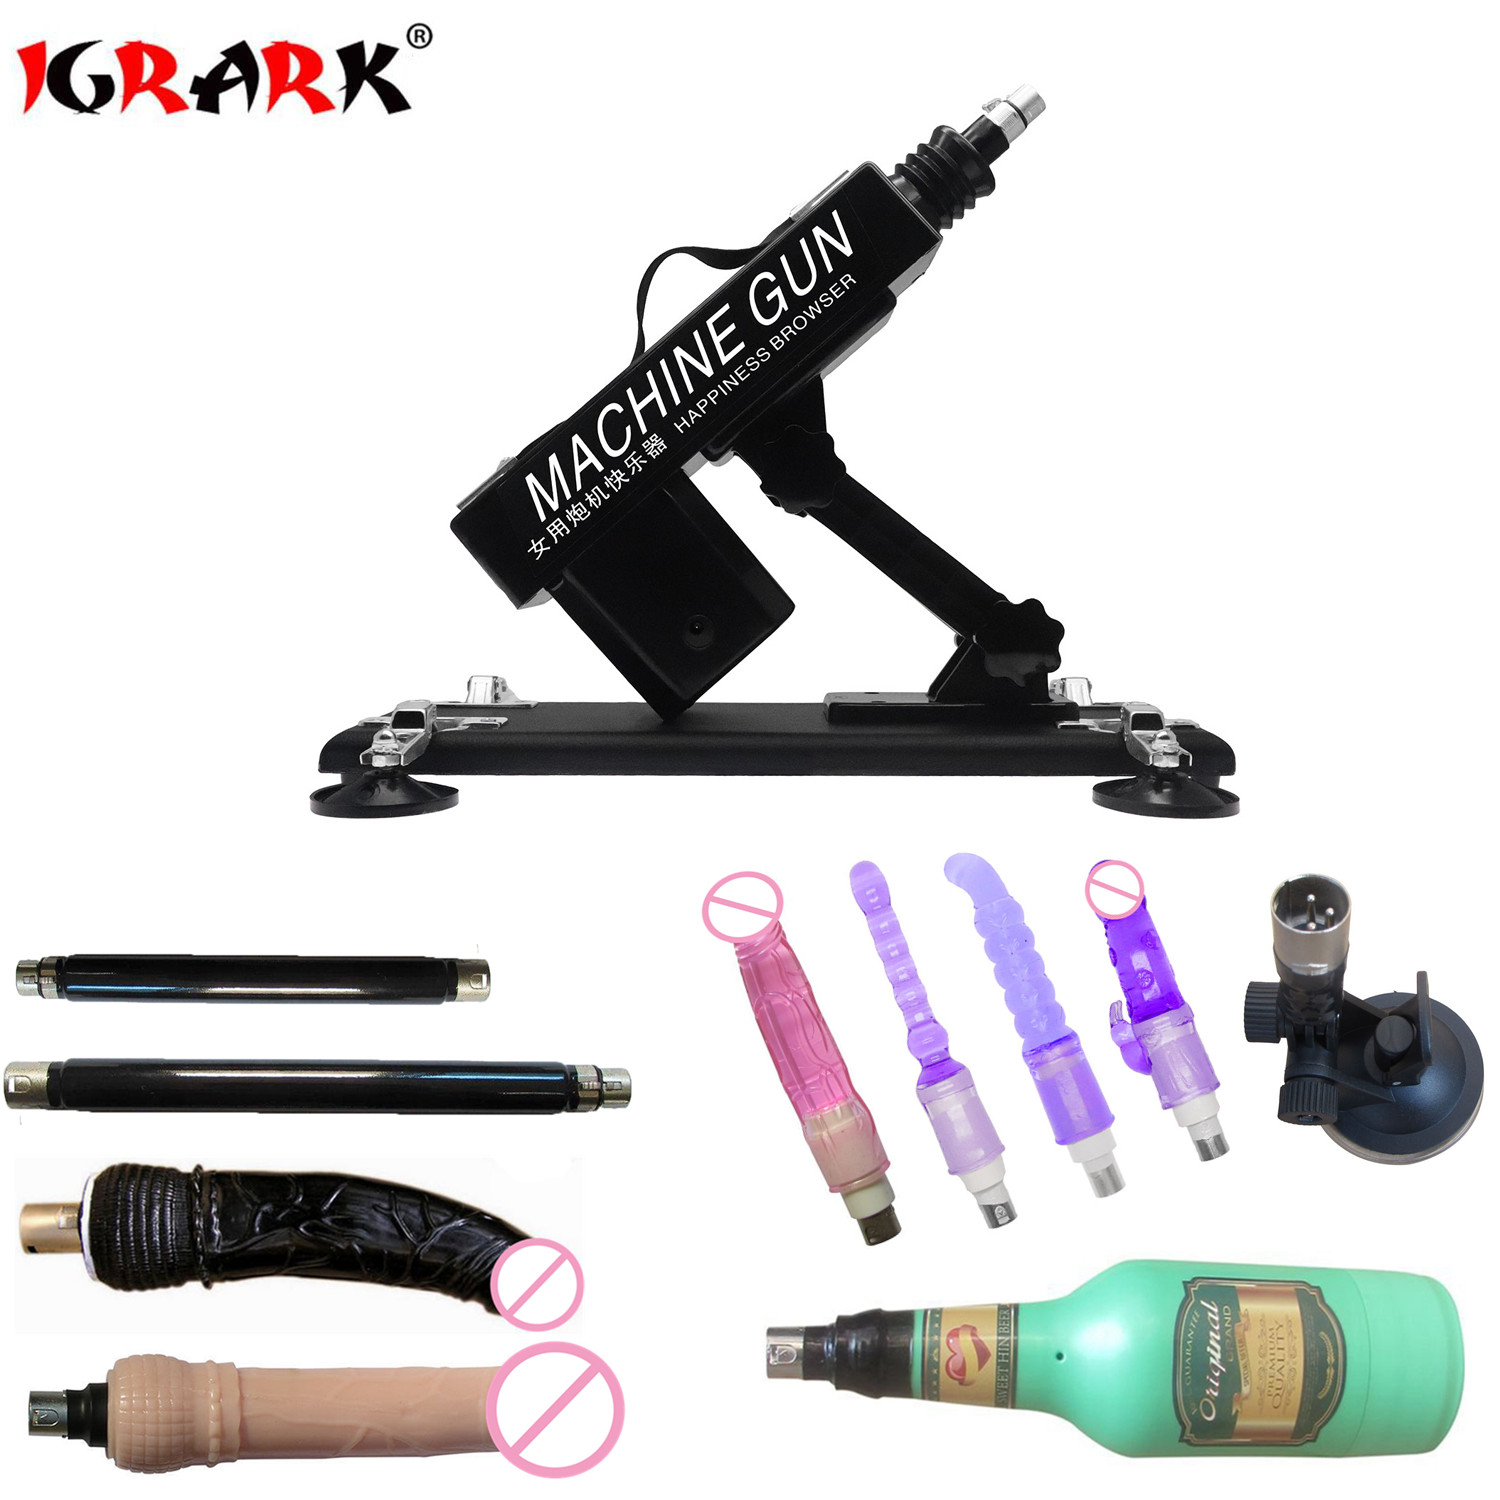 IGRARK Automatic Updated Sex Machine With 6 Different Size Balls Dildos Love Machine Gun Sex Toys For Woman Sex Products-in Vibrators from Beauty & Health